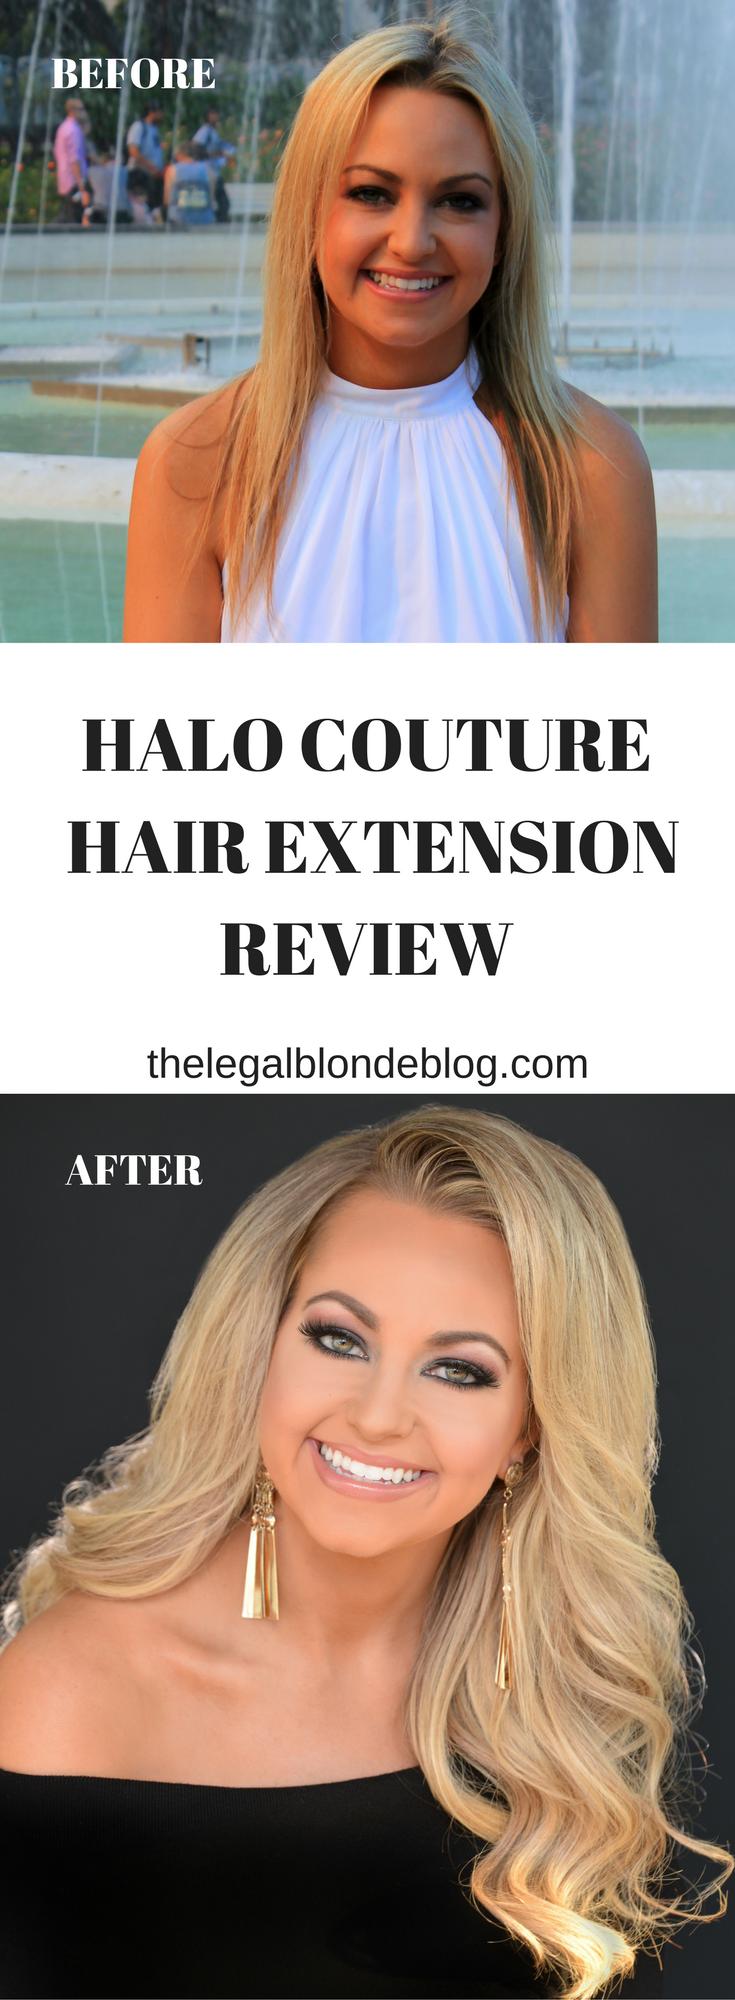 Halo Couture Hair Extension Review The Legal Blonde Blog